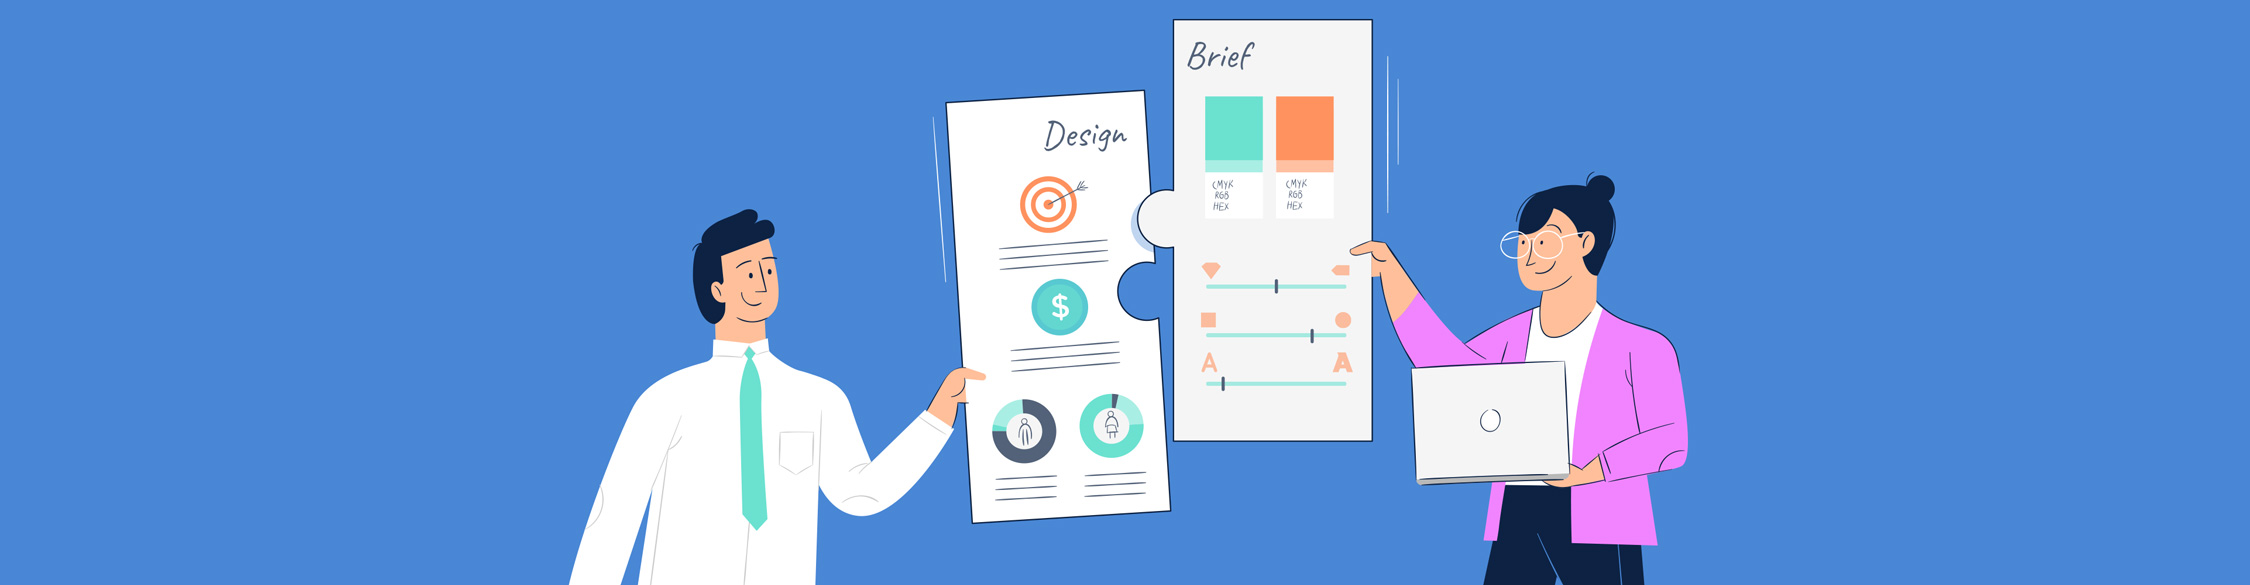 design brief - header